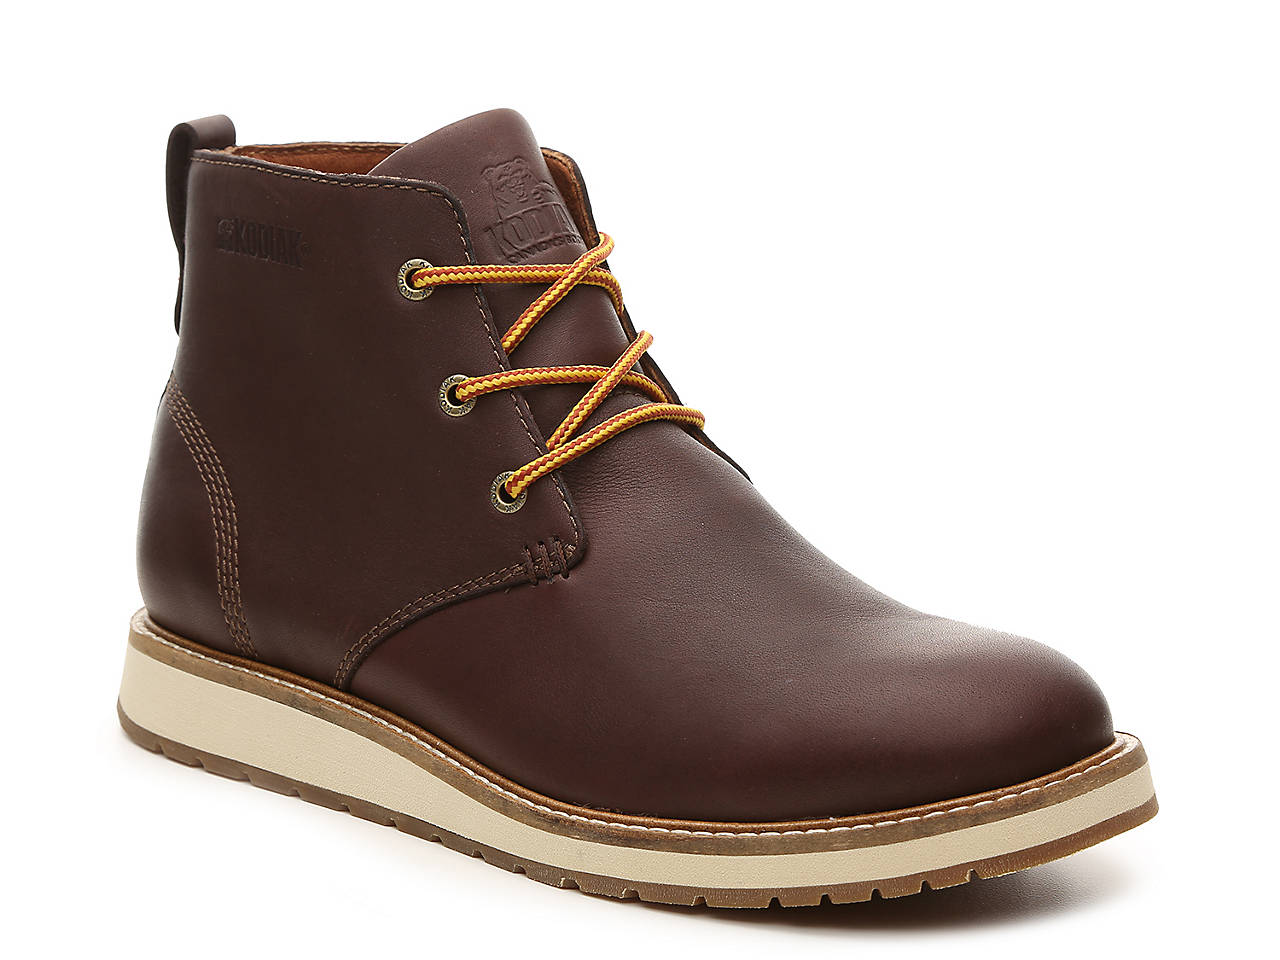 Kodiak Chase Men's Waterproof ... Chukka Boots oiPuuqpTM